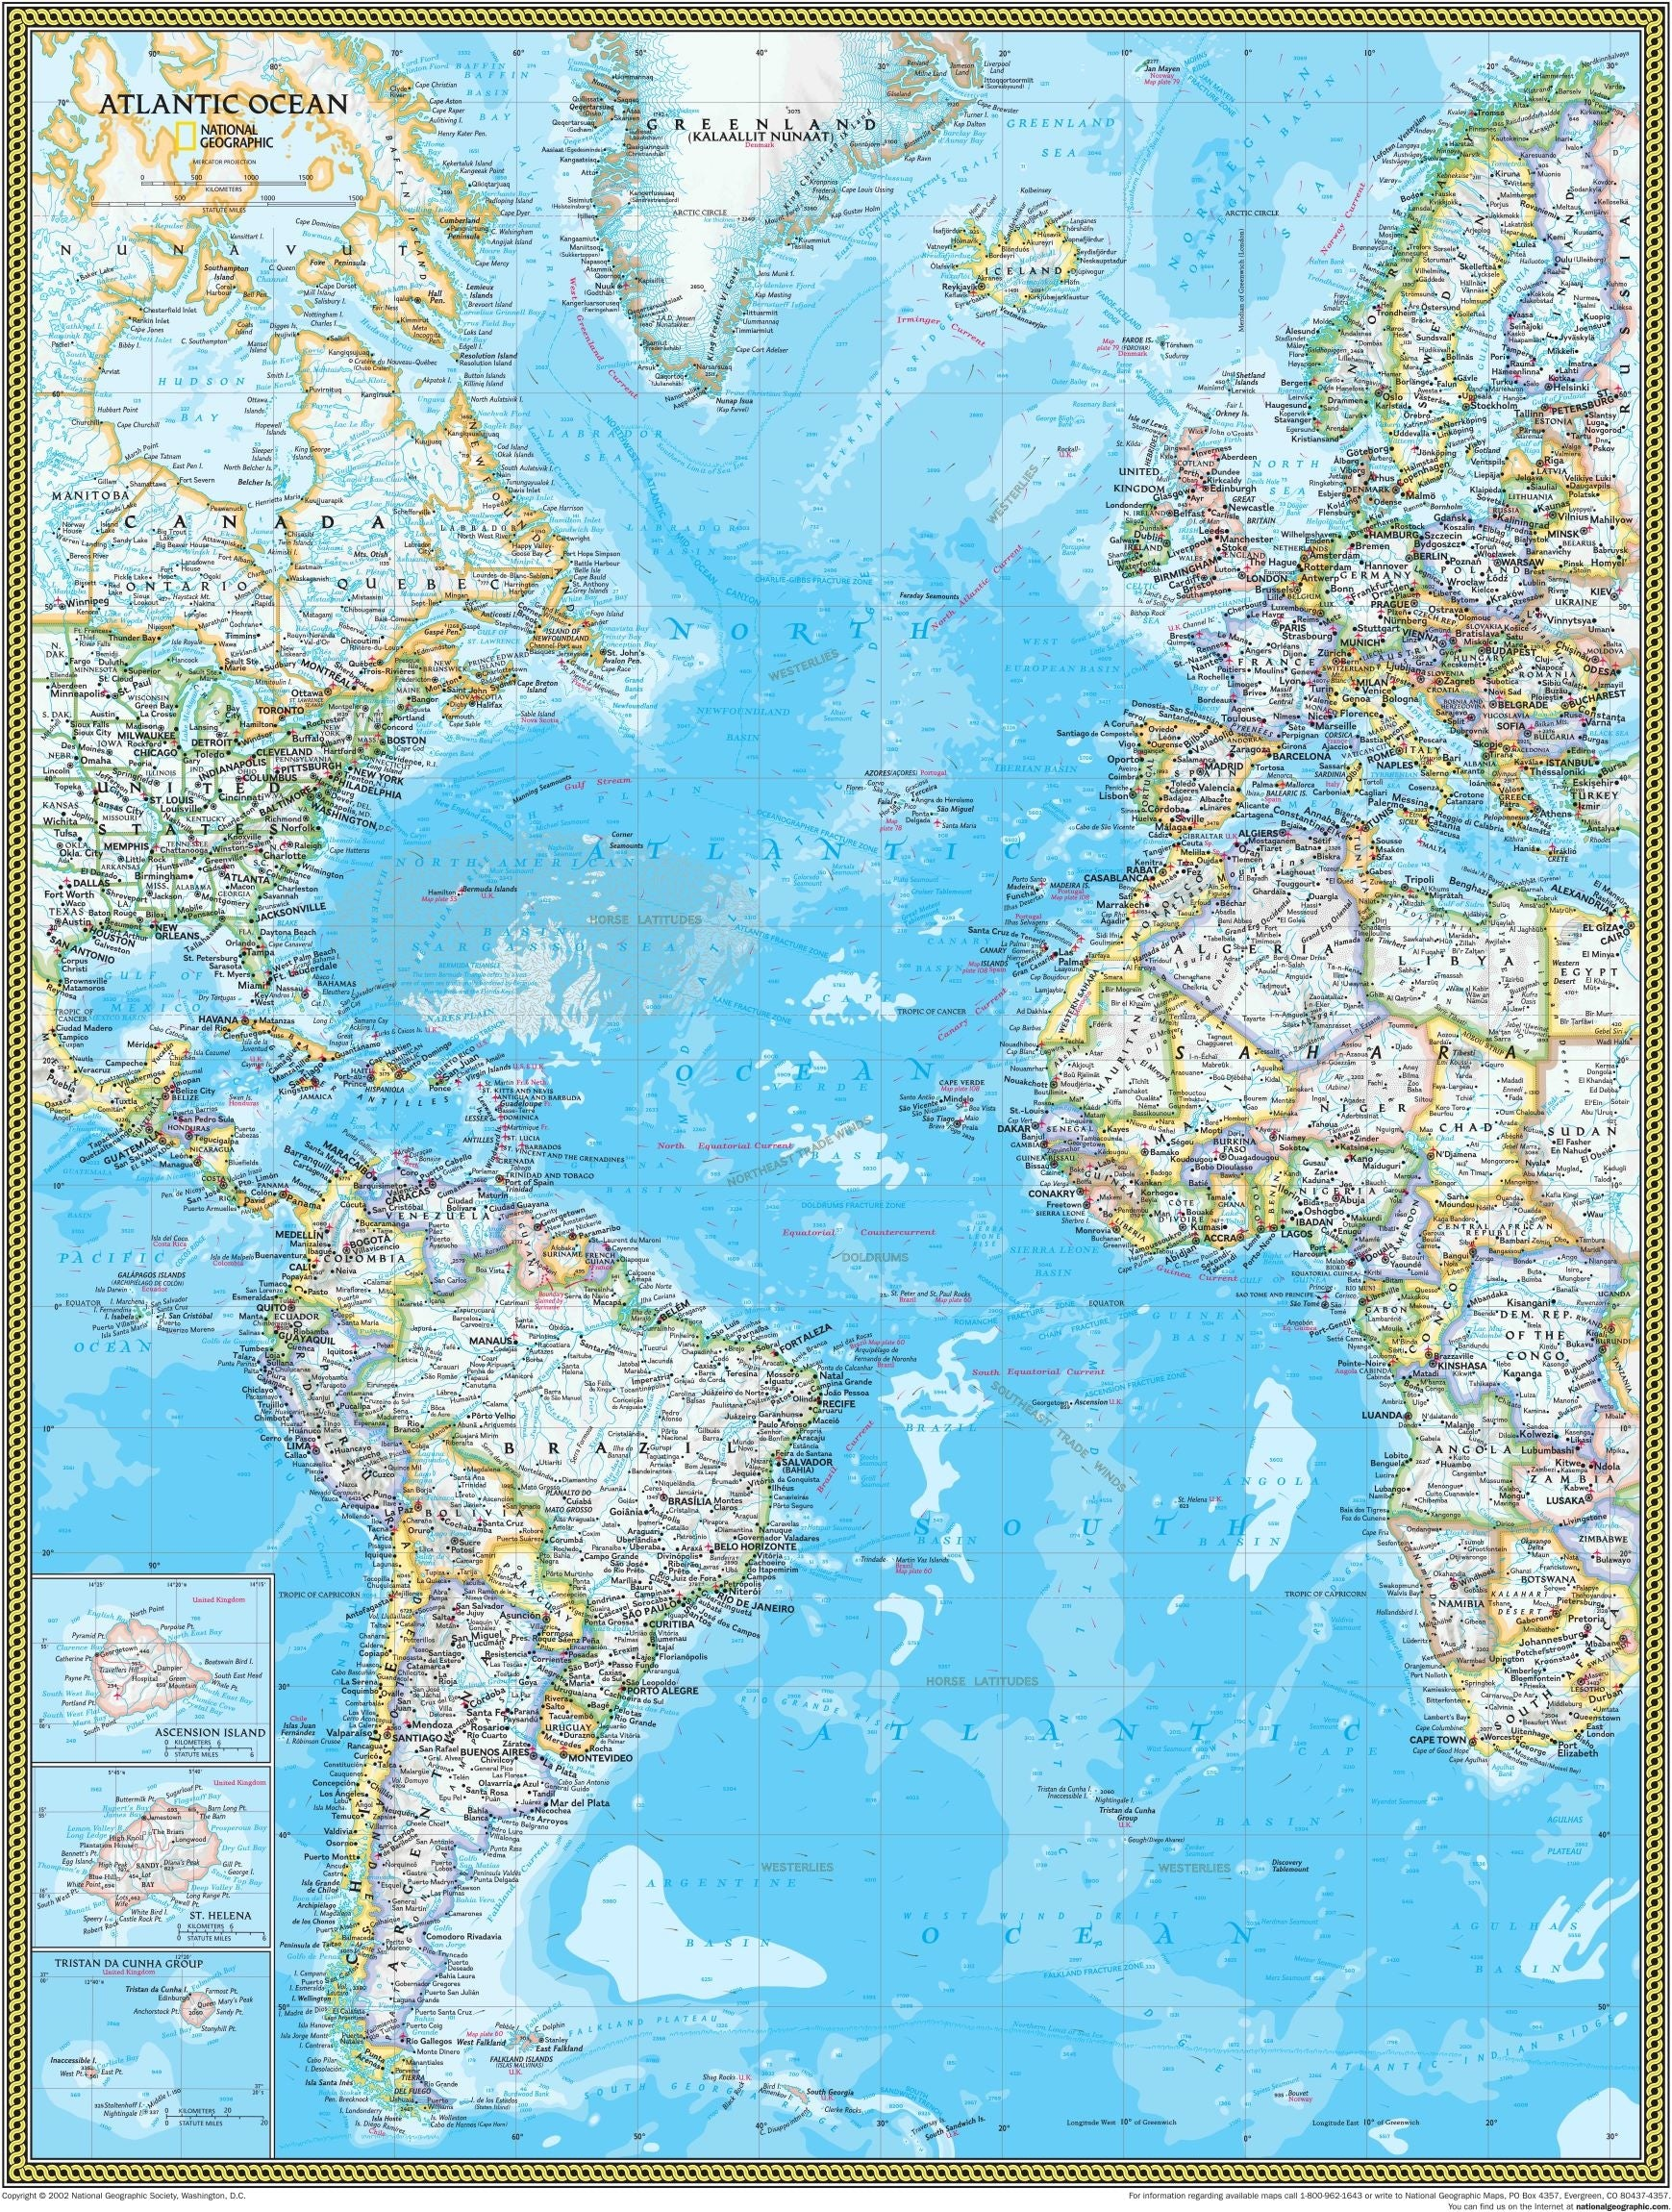 National Geographic Atlantic Ocean Political Wall Map on europe shaded on a world map, national geographic world mural map, national geographic language world map, national geographic world map wallpaper, national geographic framed world map, national geographic large world map,